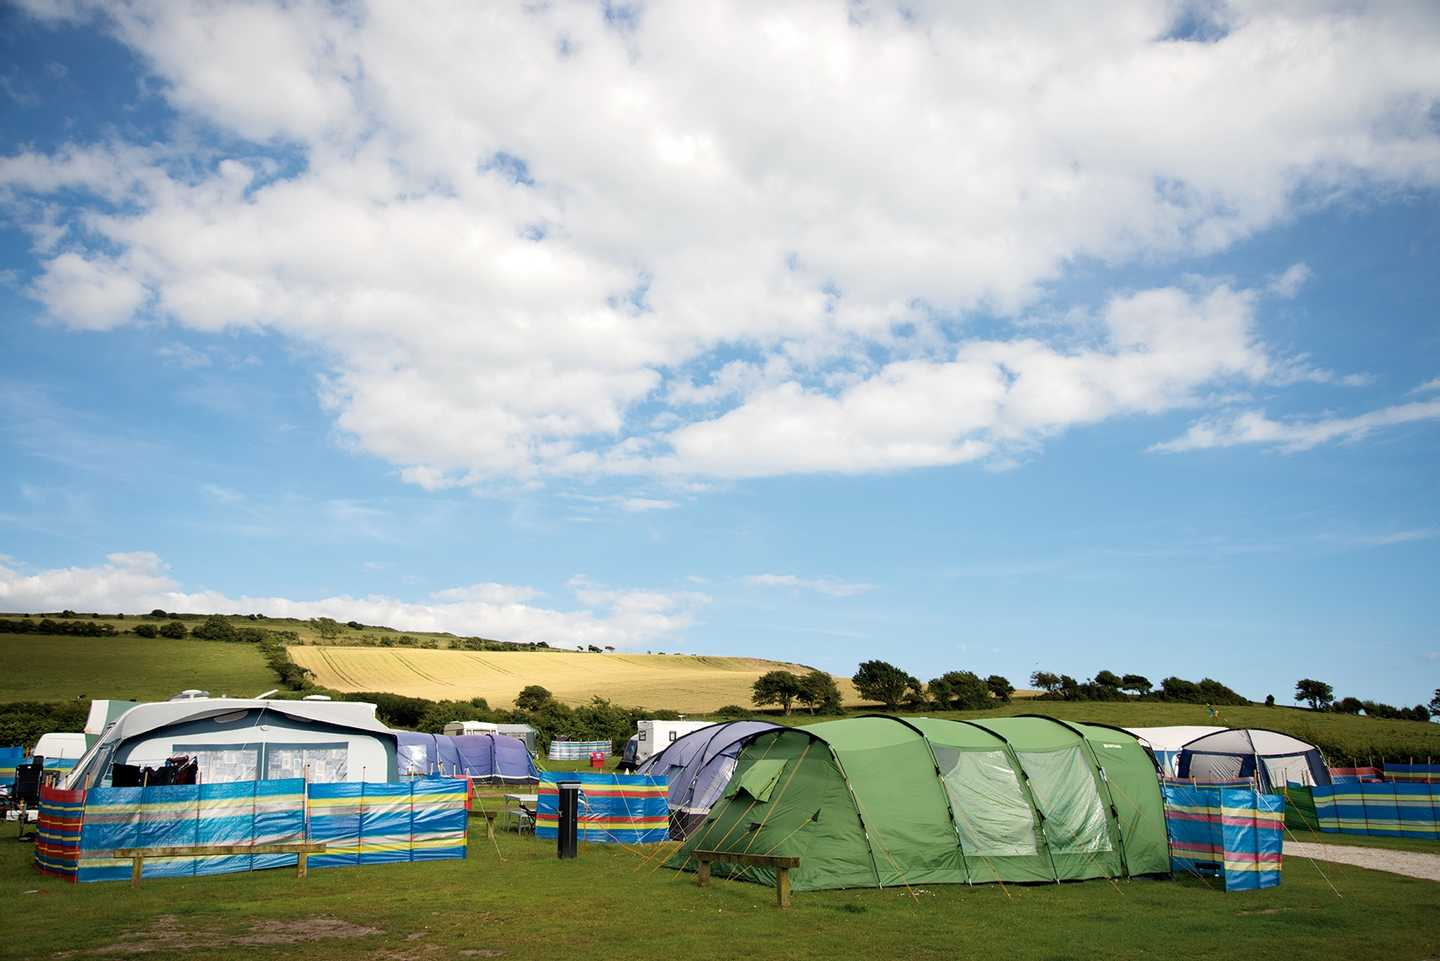 The view beyond the touring and camping area